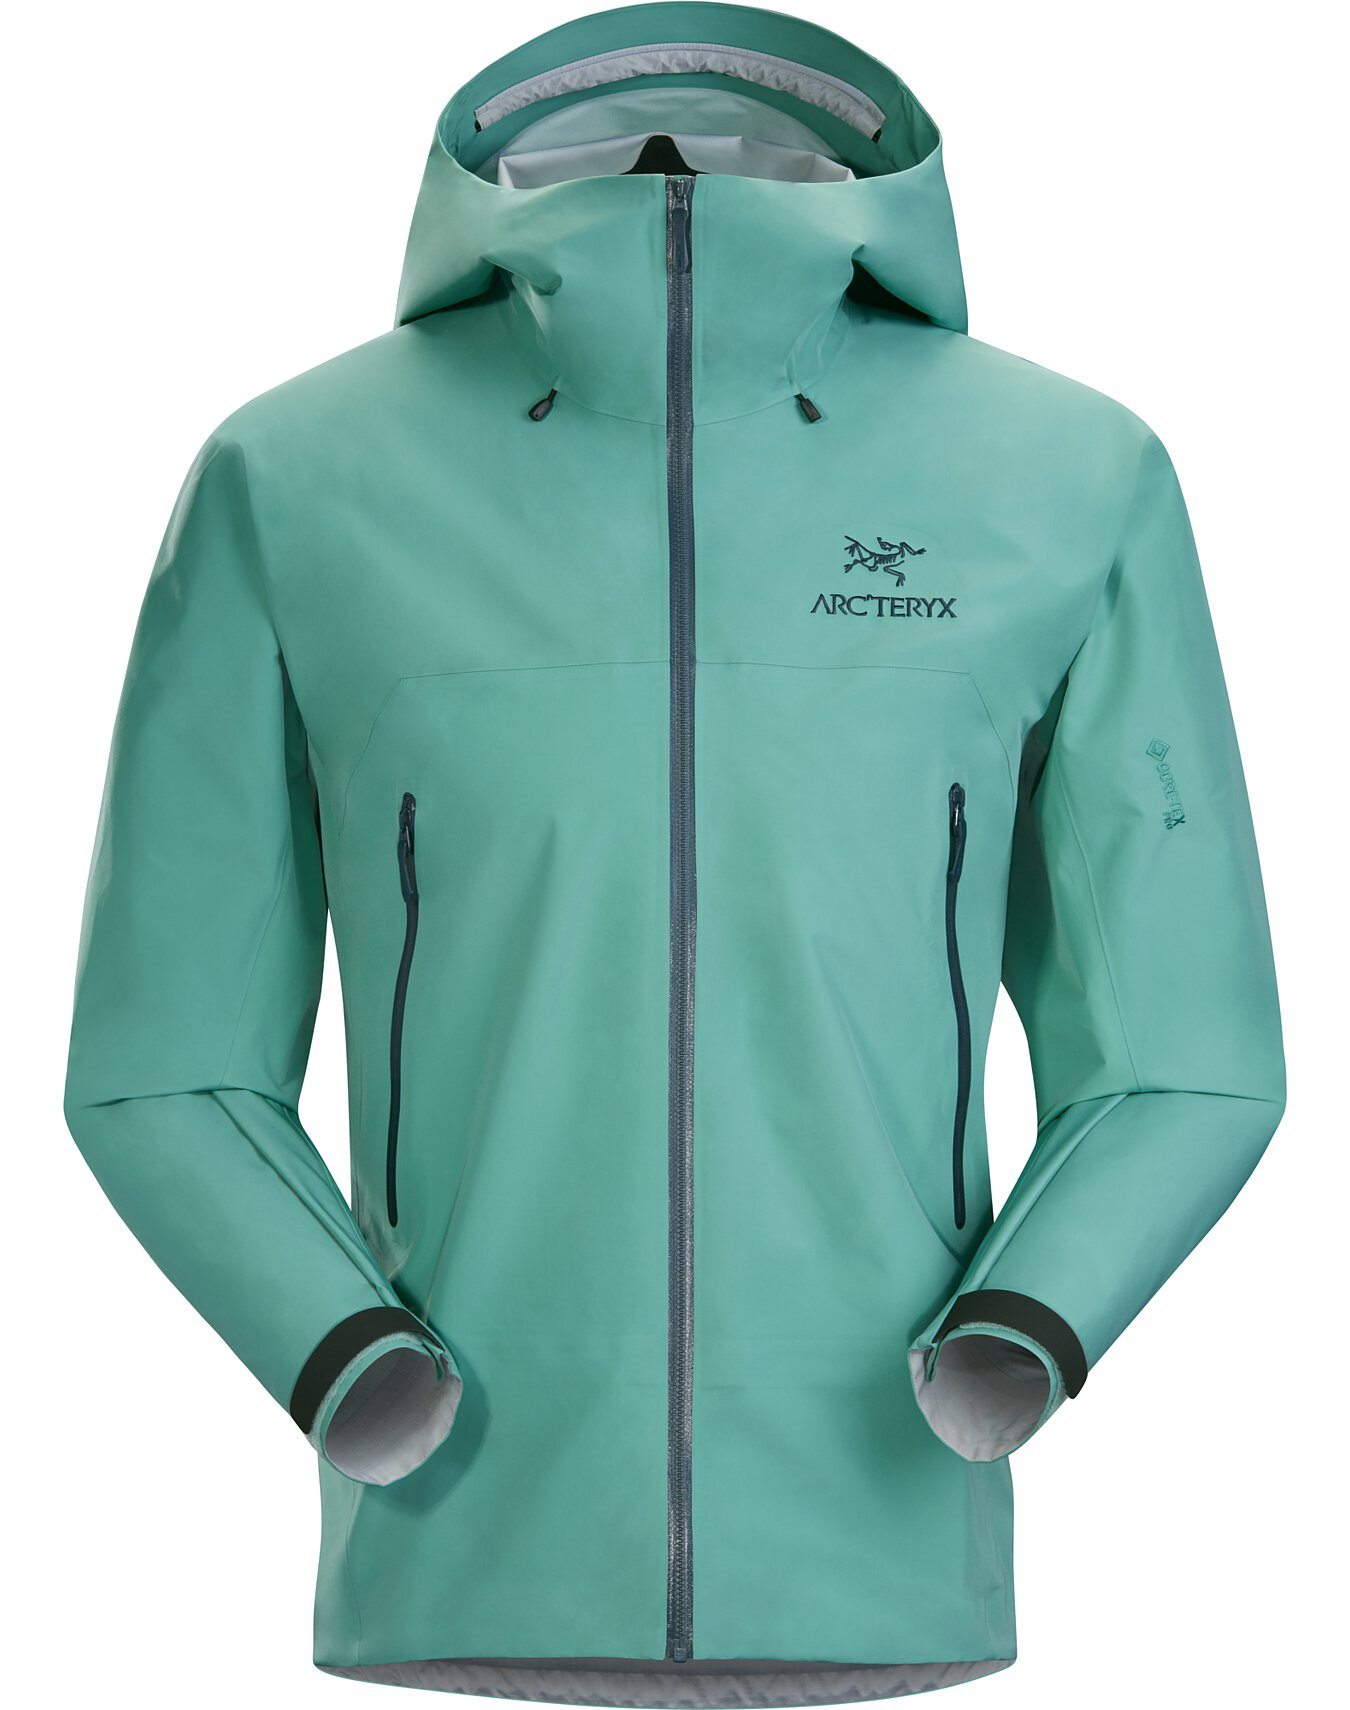 Beta FL Jacket Men's